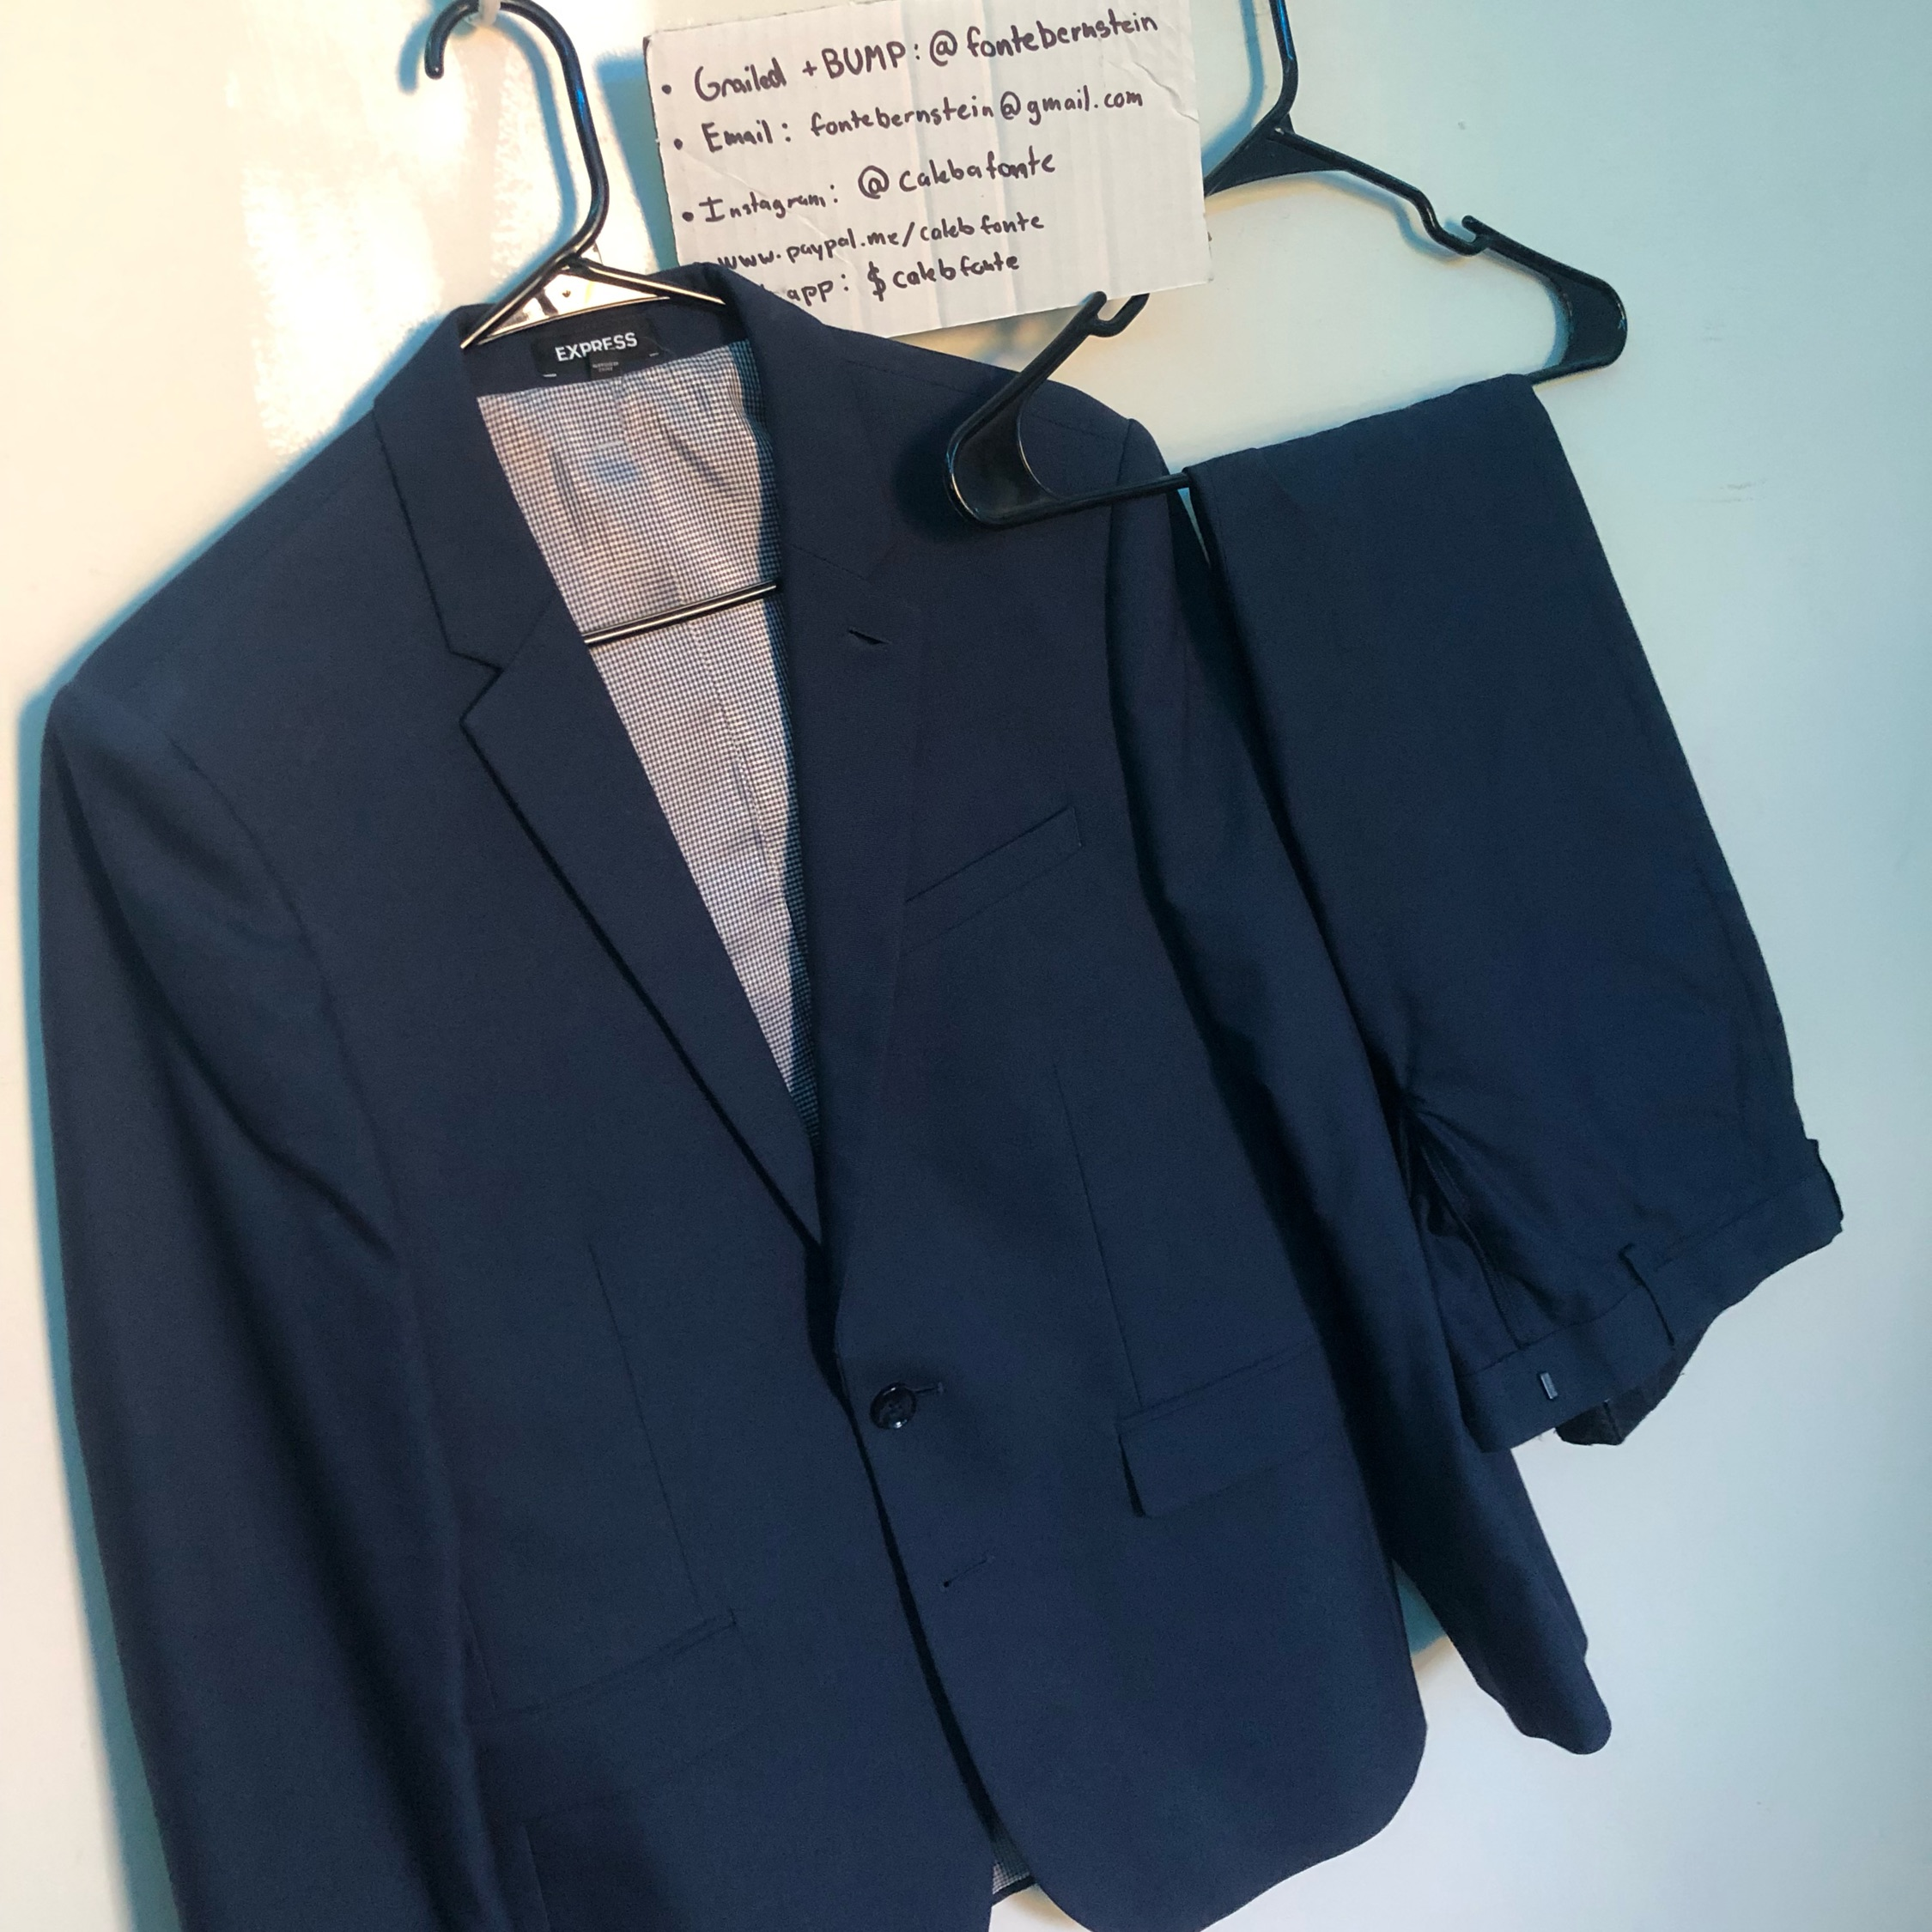 Taking Offers Express Mens Suit Blazer And Pants